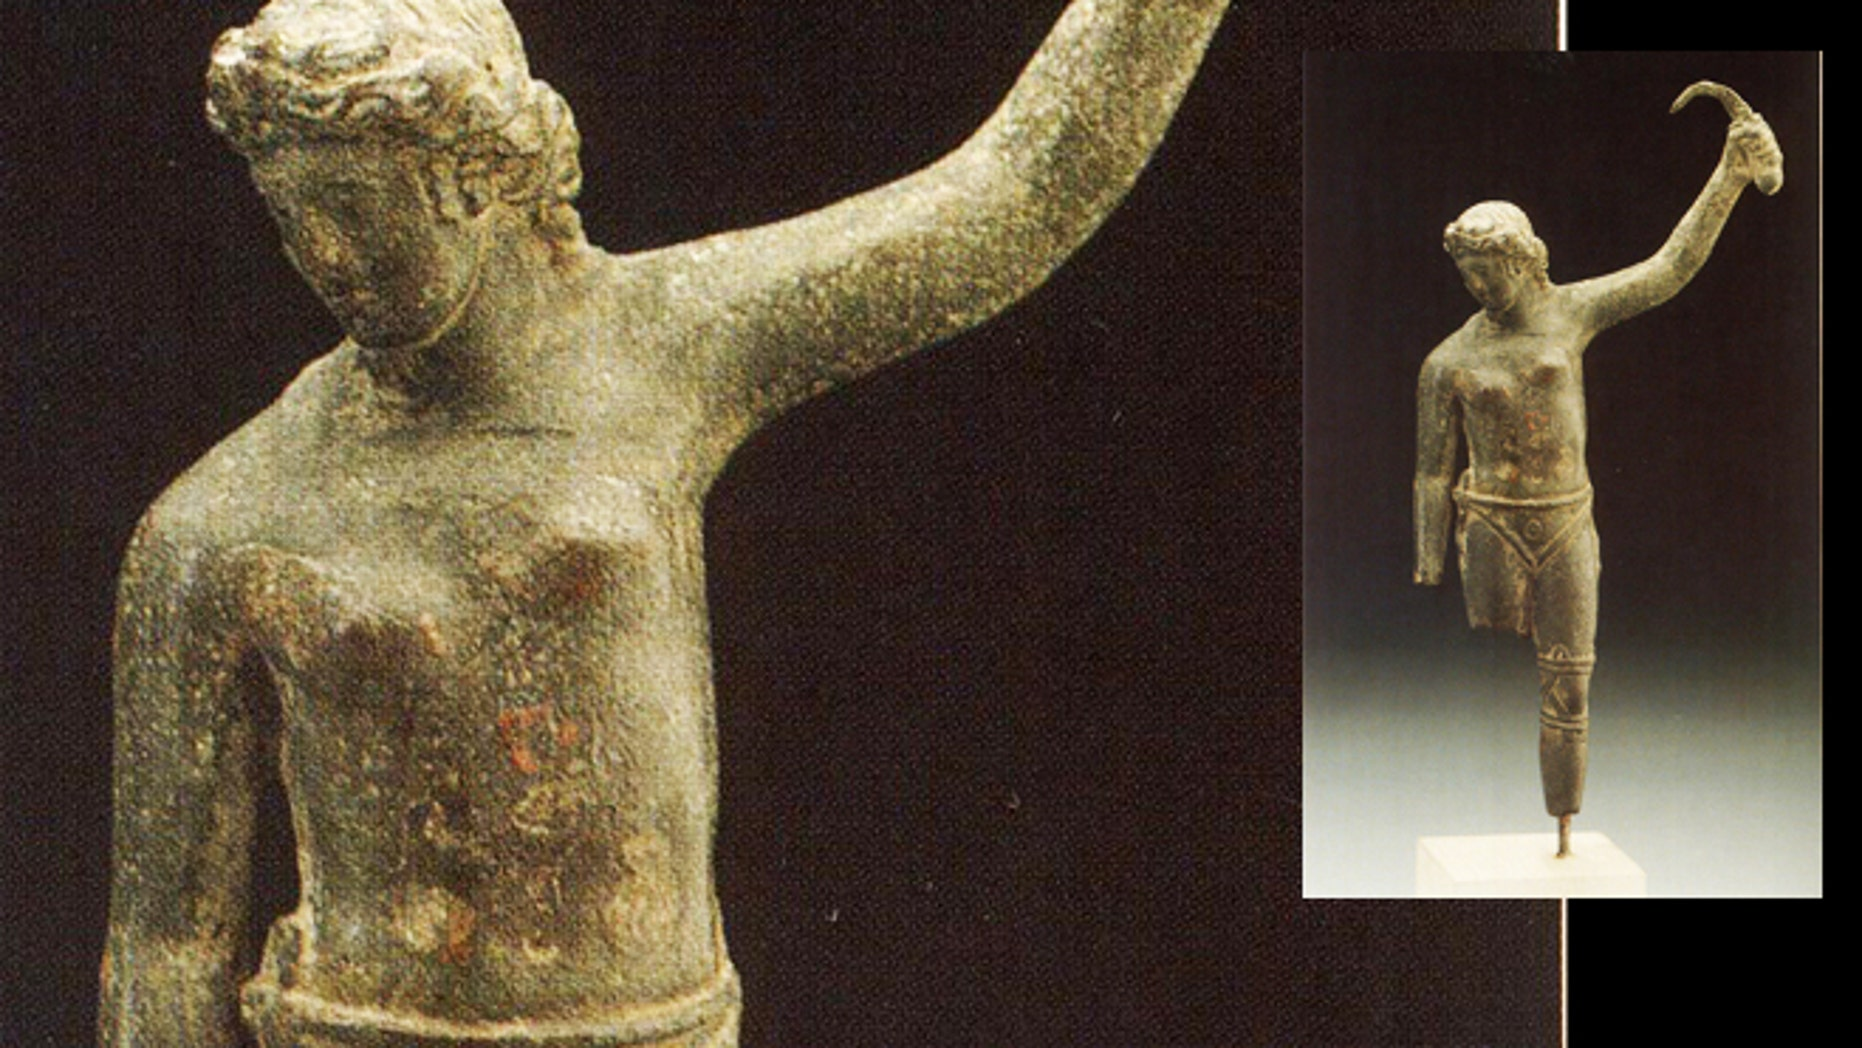 The newly identified bronze statue reveals what may be a female gladiator standing in a victory pose, while looking down at what is presumably her fallen opponent.